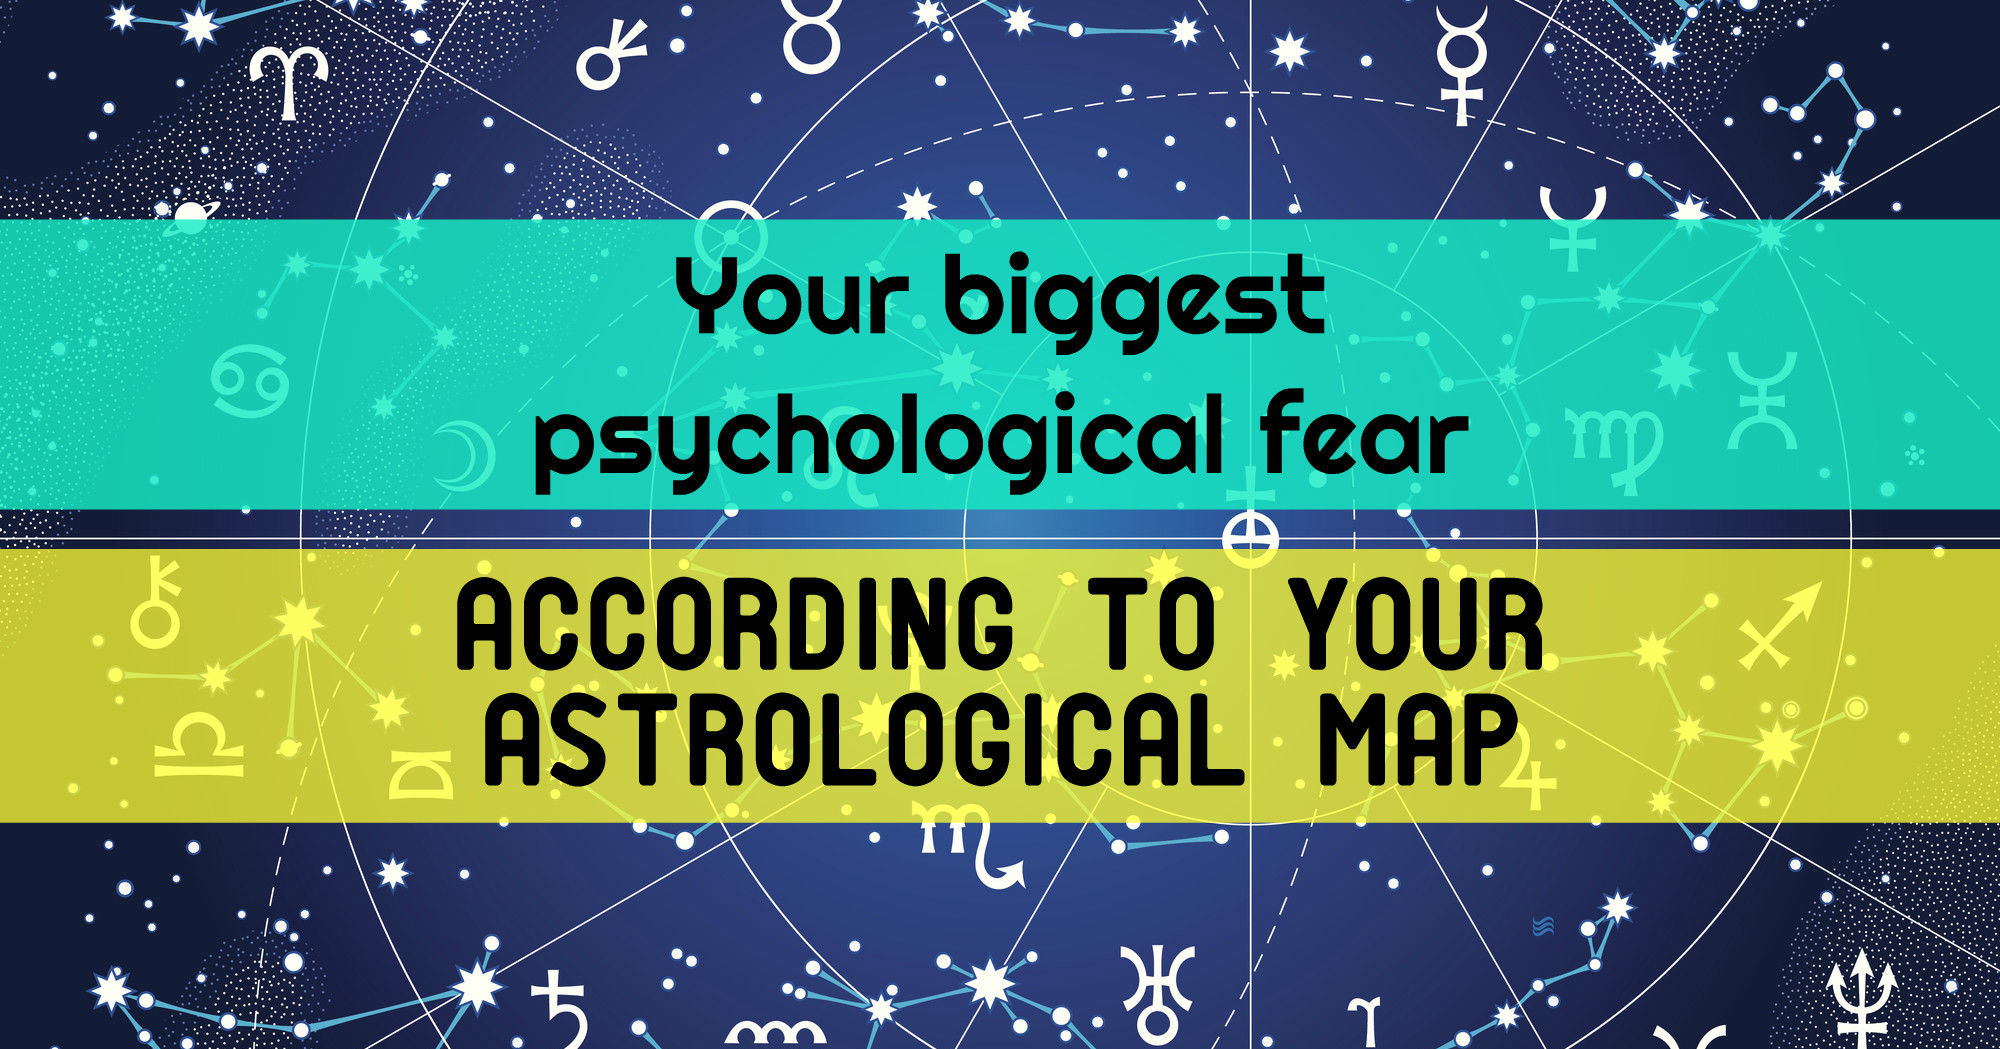 What Is Your Biggest Psychological Fear According To Your Zodiac Sign